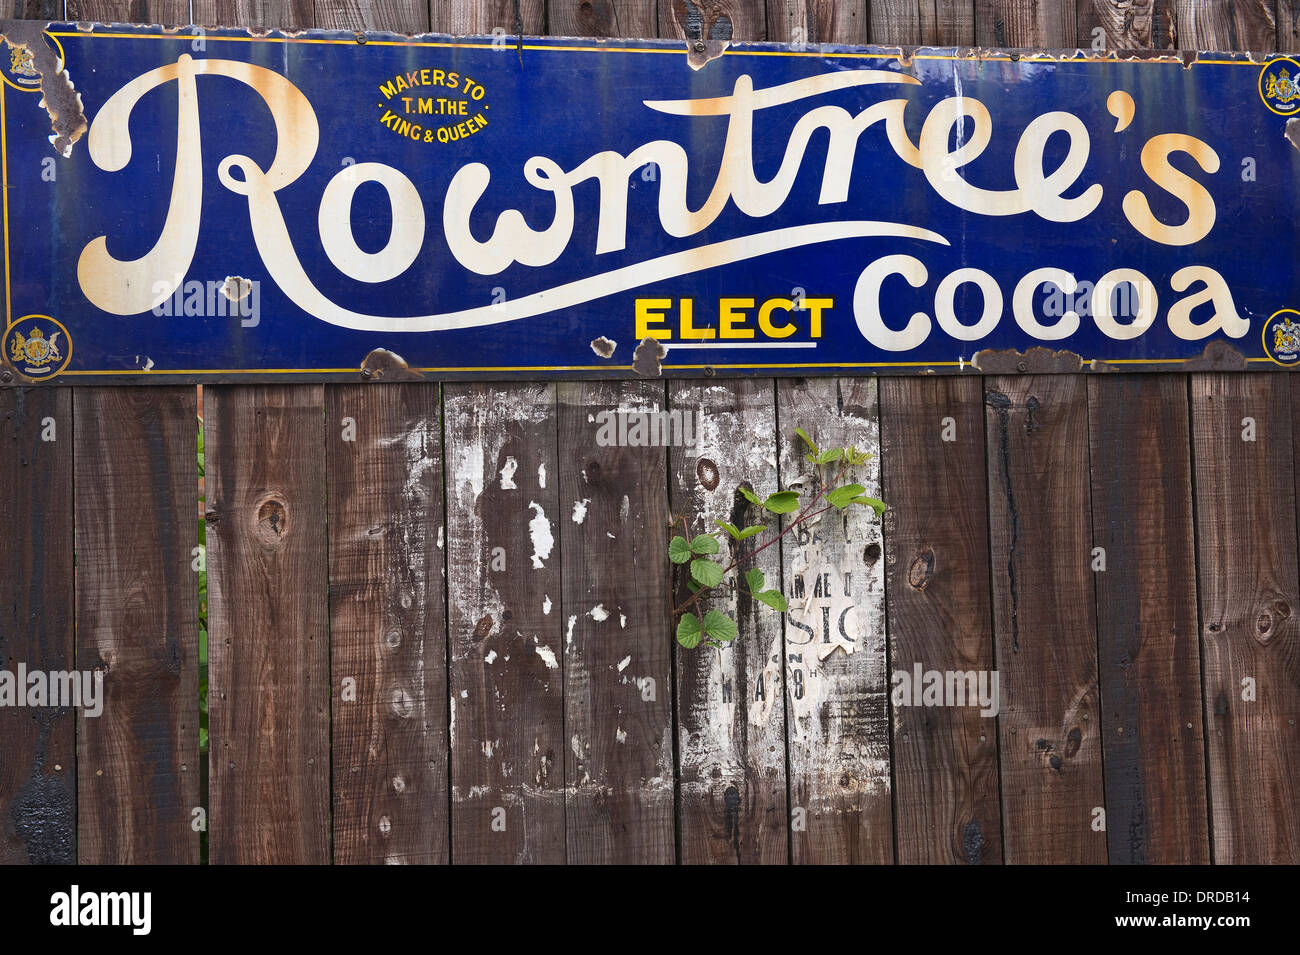 Advertisement for Rowntree's Elect Cocoa Beamish Open-Air Museum, County Durham, England, UK, Europe - Stock Image